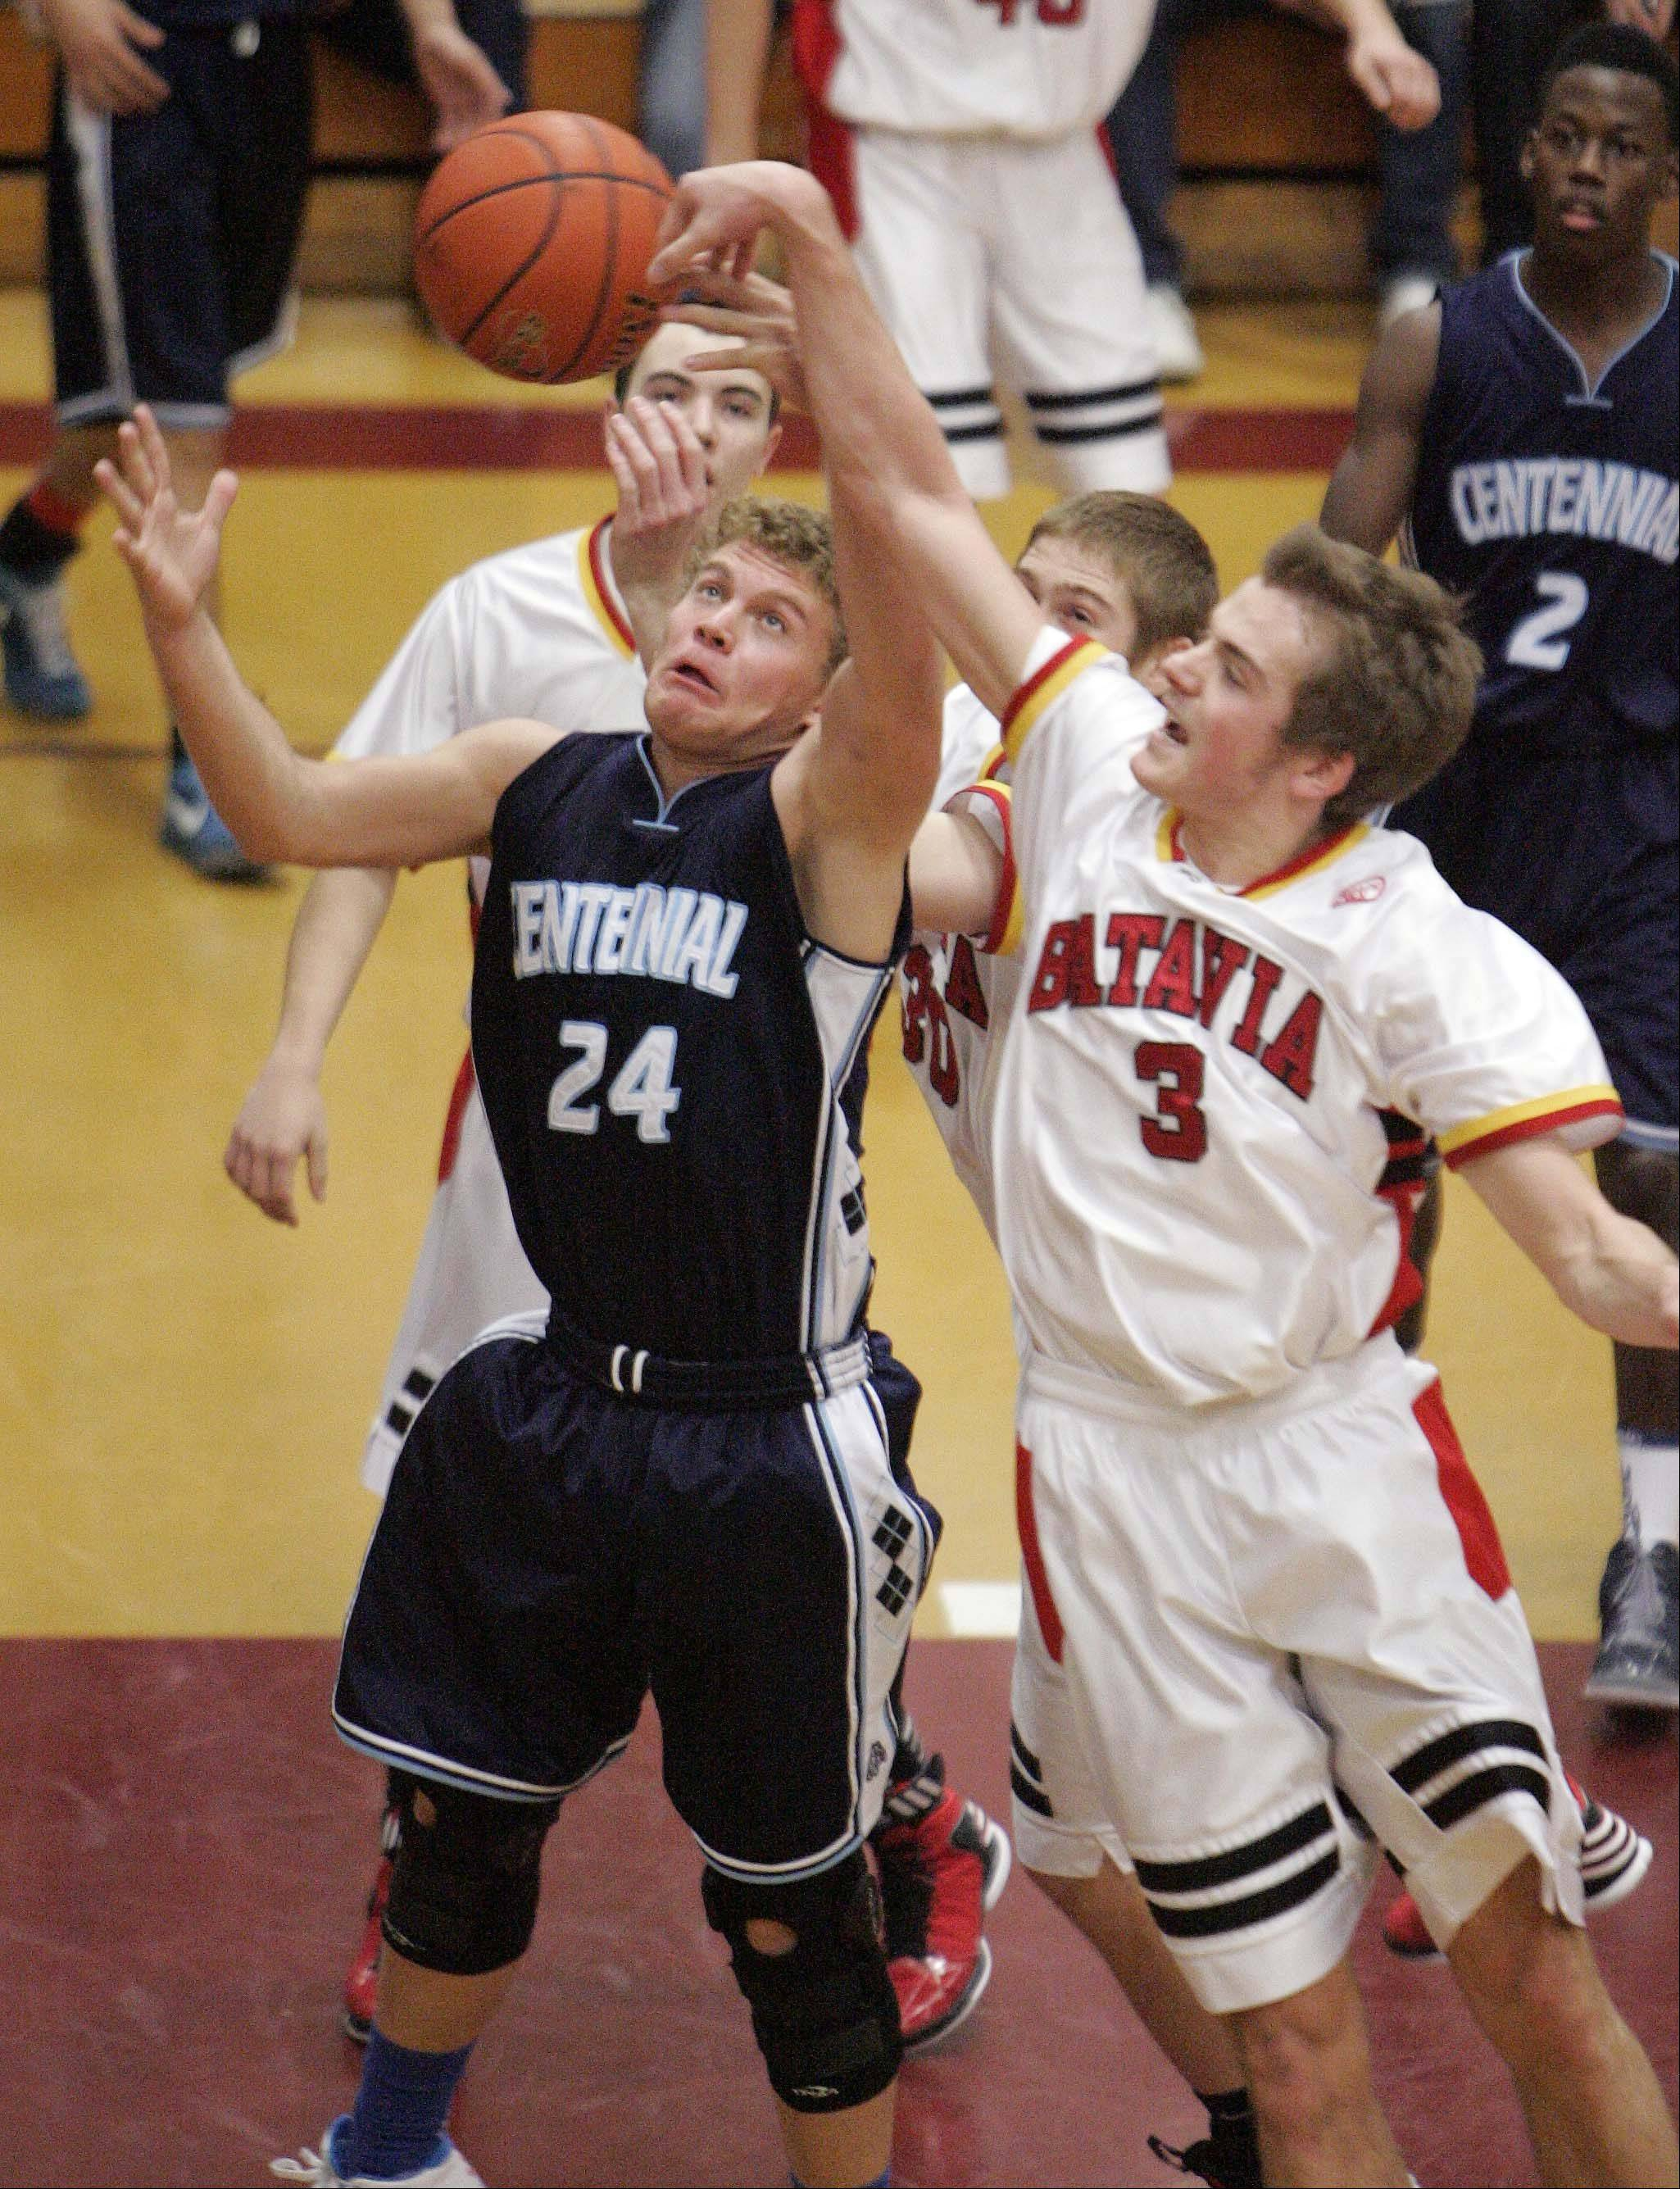 Batavia guard Jake Pollack (3) knocks a rebound from the hands of Las Vegas Centennial�s Austin Turley, 24, during the third place basketball game of the 38th Annual Elgin Boys Holiday Basketball Tournament Saturday, December 29, 2012 in Elgin.